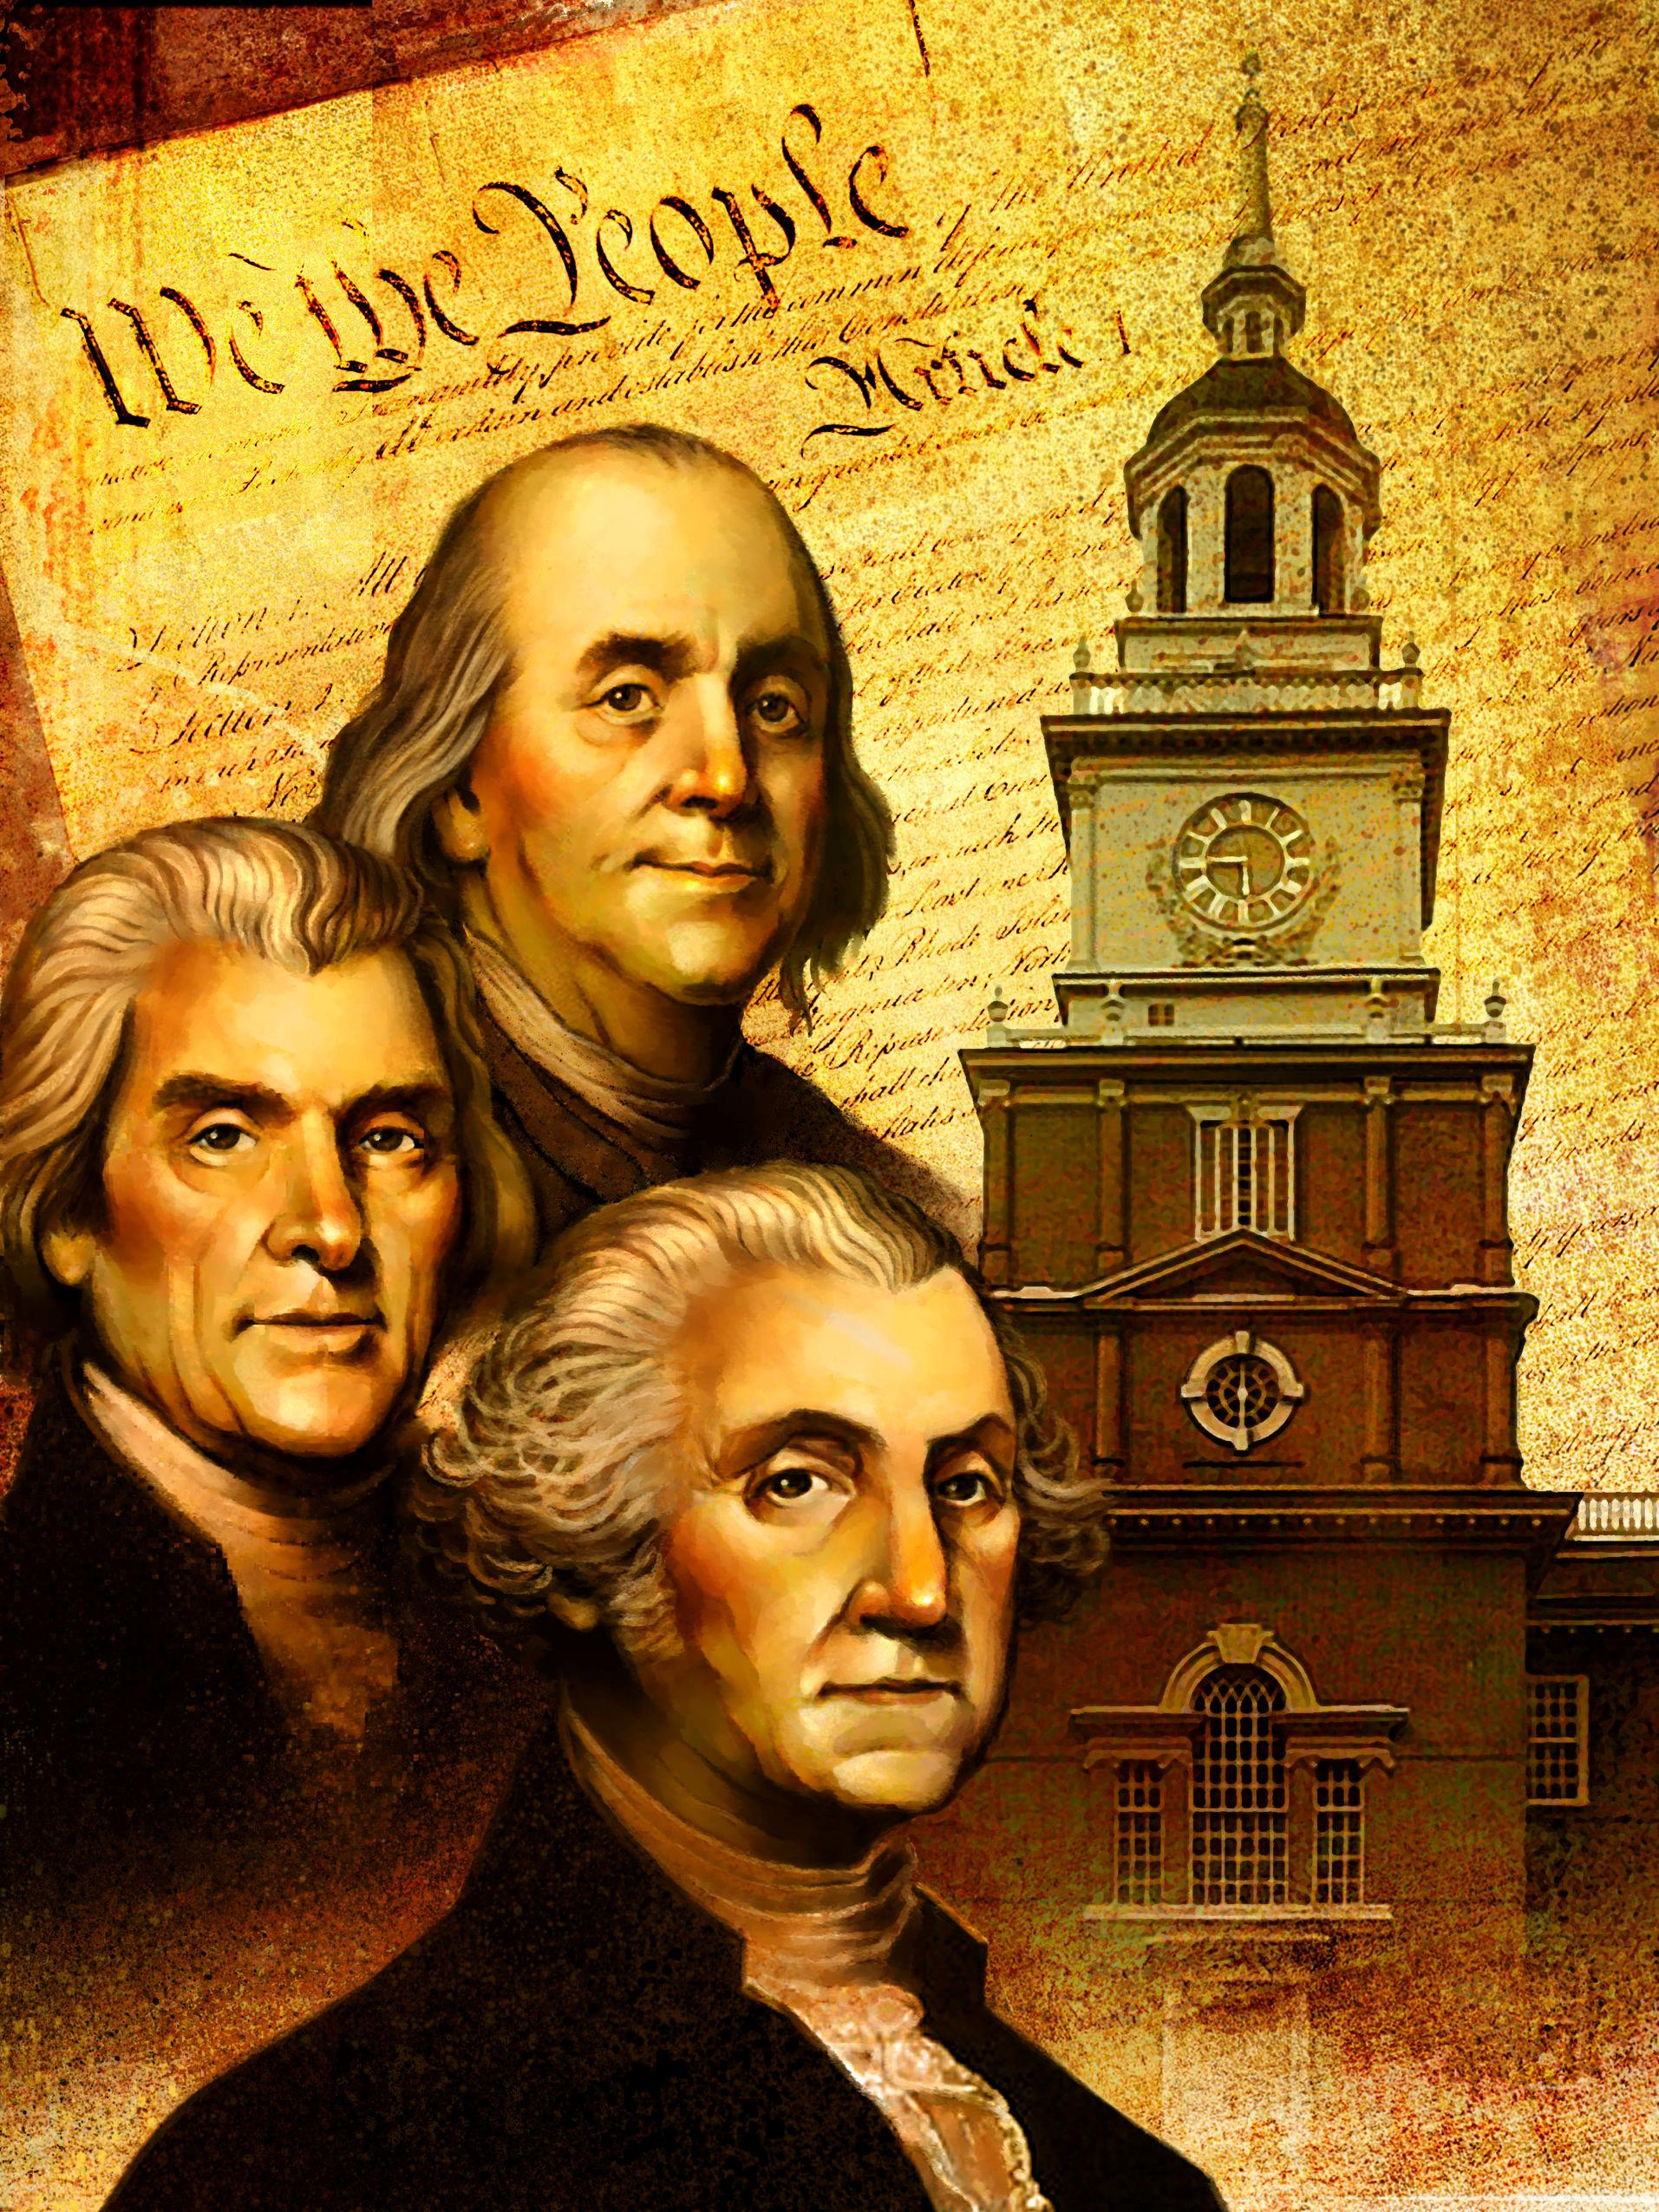 being american liberty equality and republicanism essay Being american: liberty, equality and republicanism essay 884 words | 4 pages the idea of equality is usually defined by everyone as the state or quality of being equal.